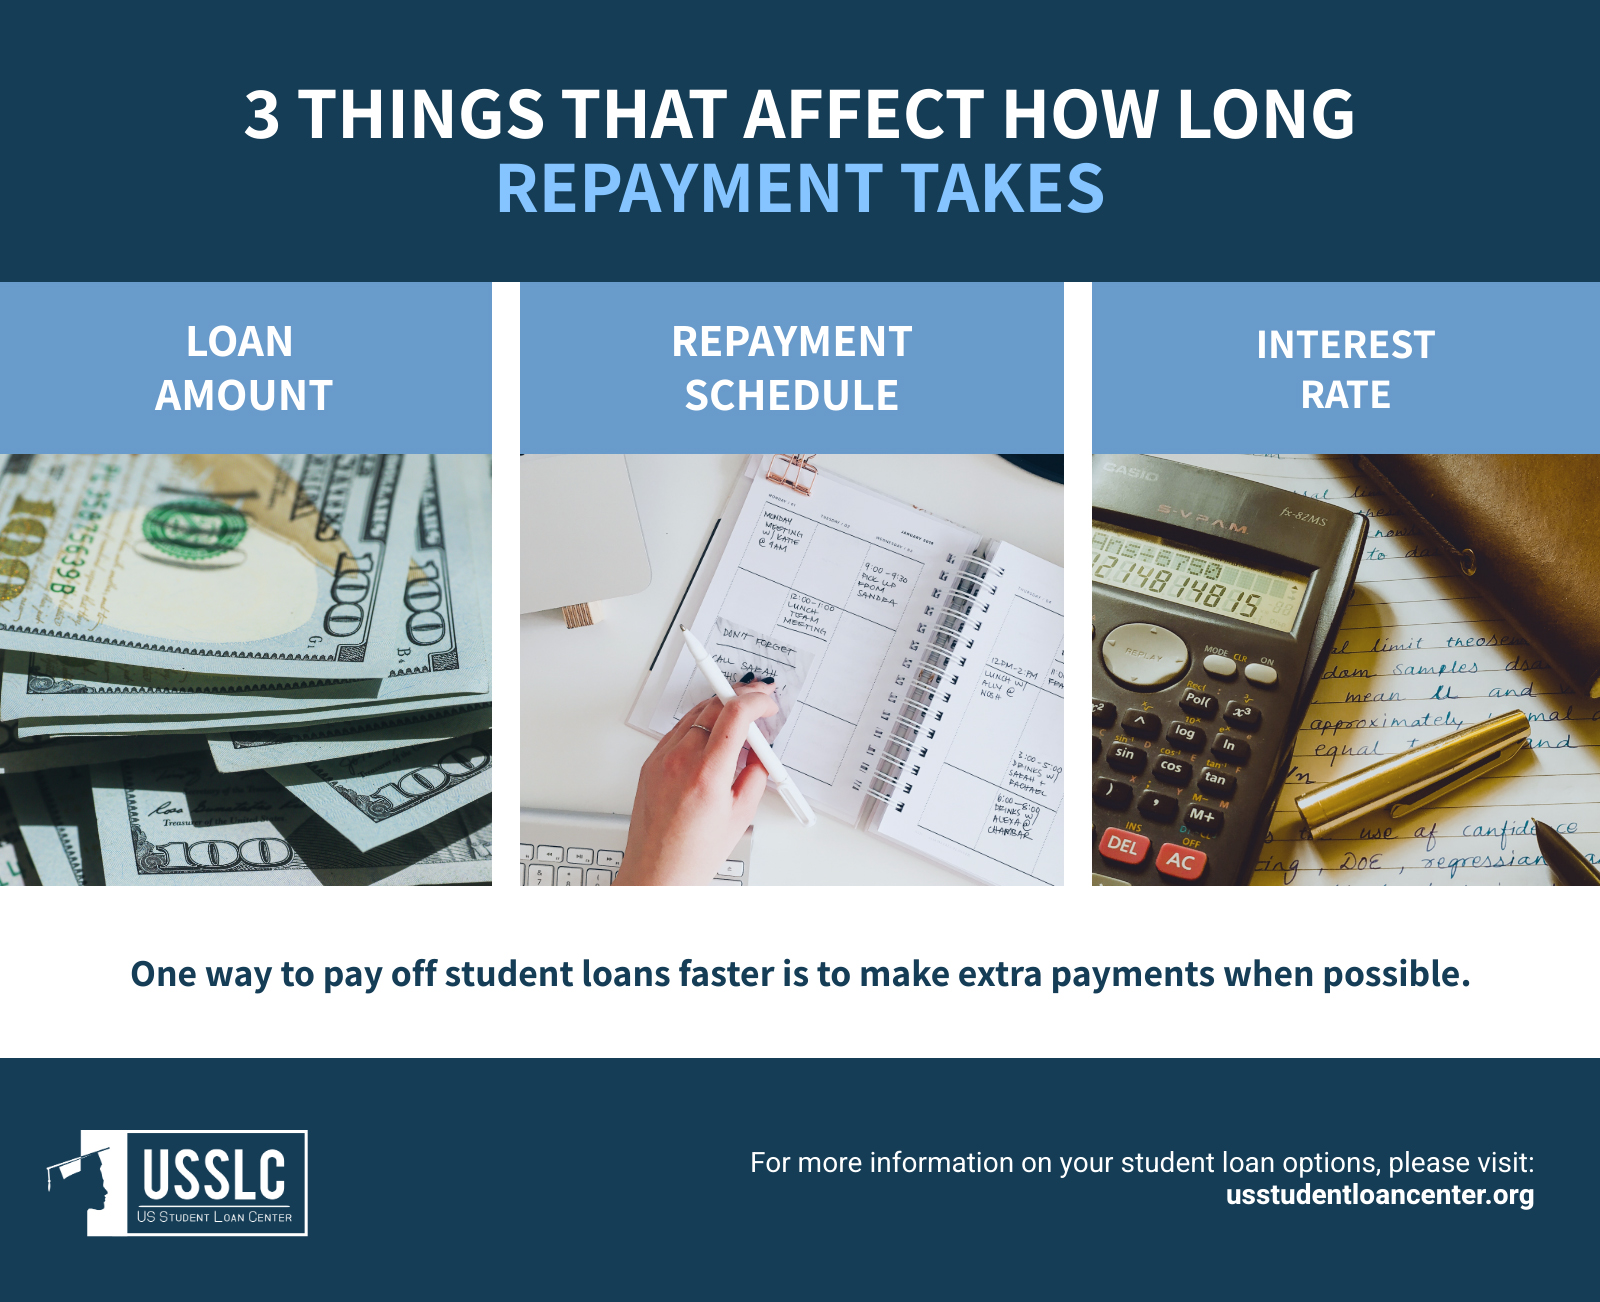 How Long Does It Take to Pay Off Student Loans 3 things that affect repayment time